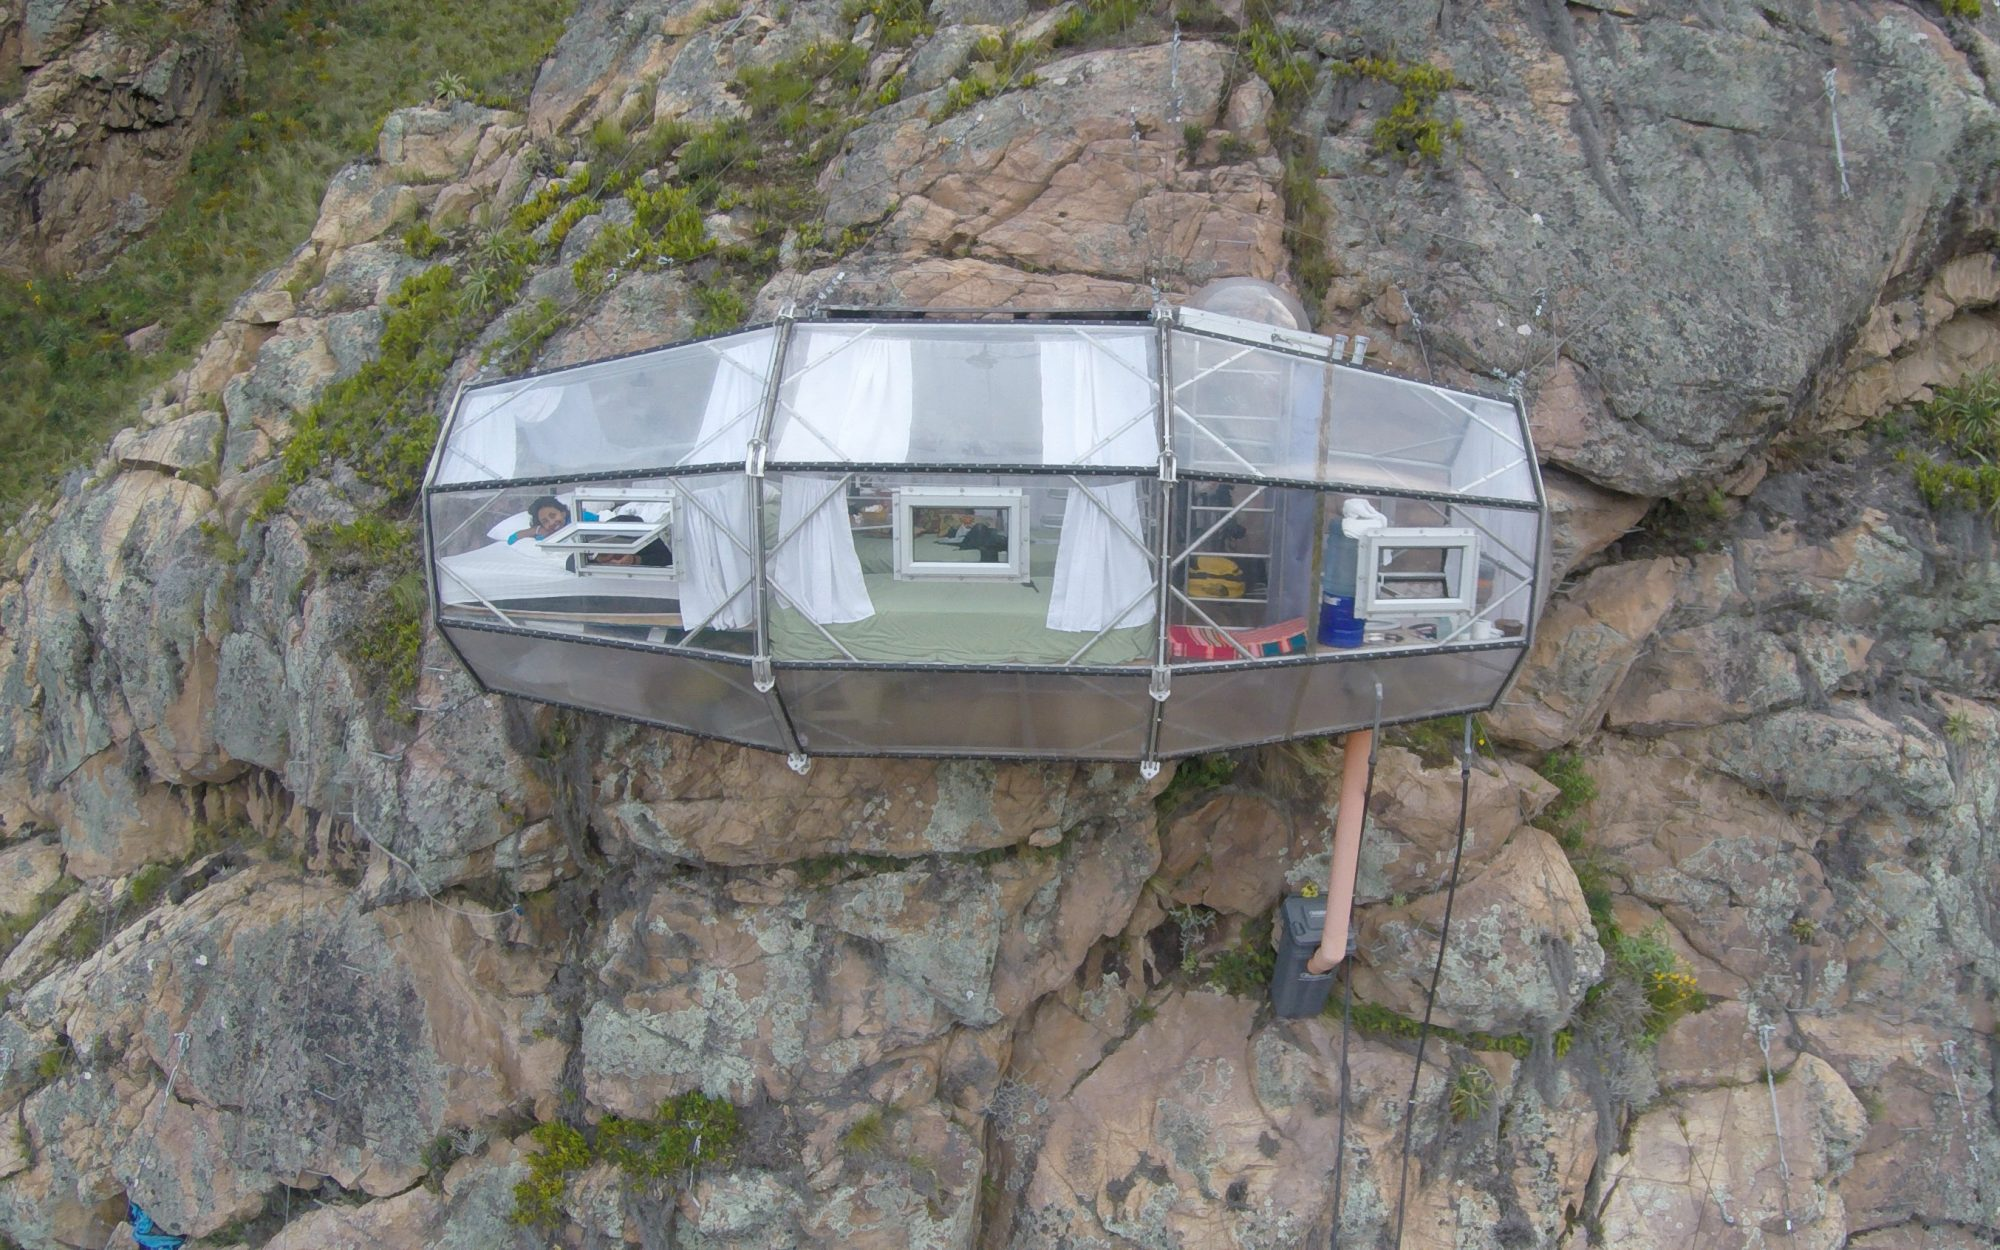 Afraid of heights? Don't book a room at the Skylodge Adventure Suites